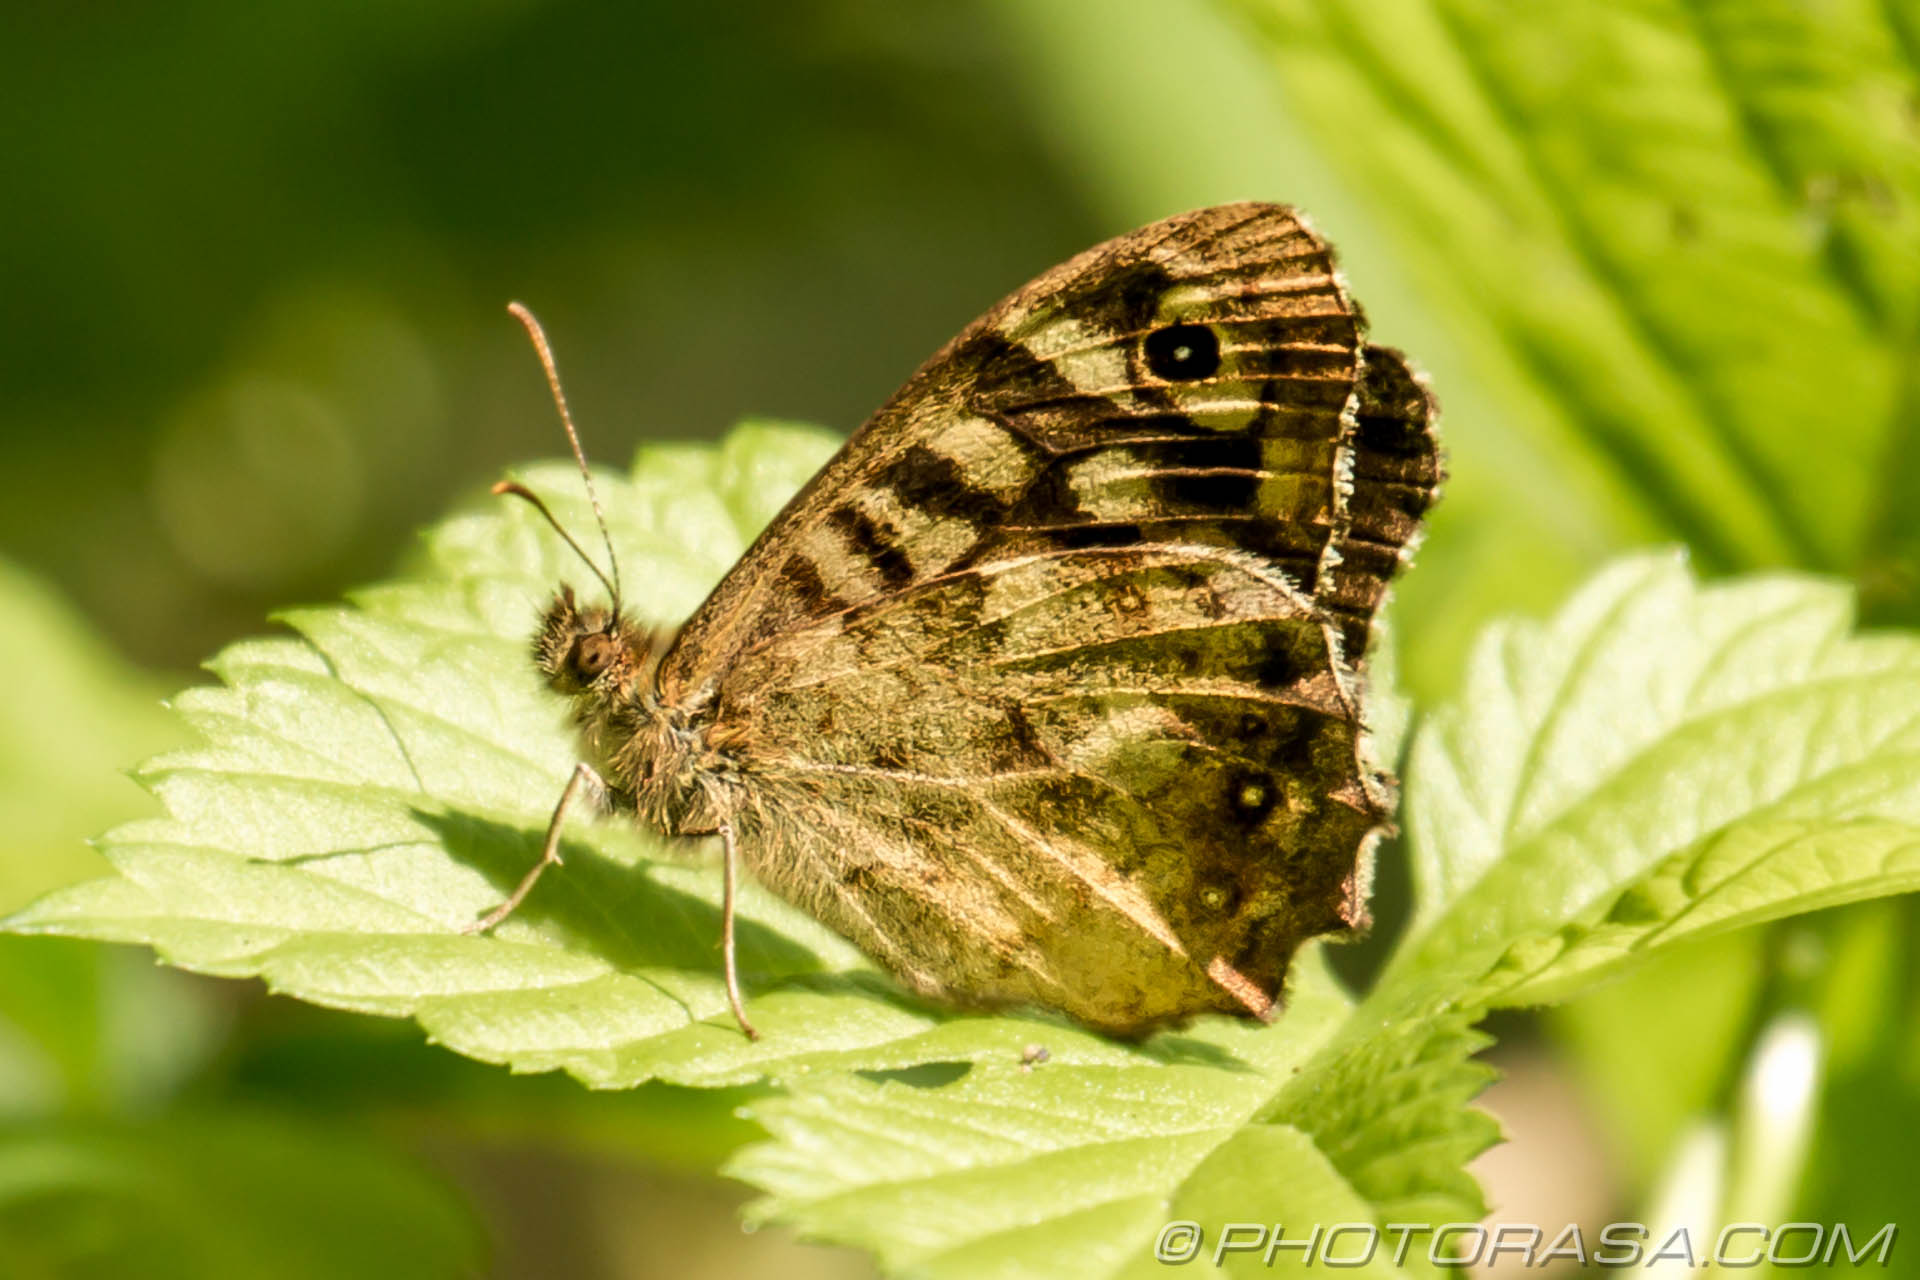 http://photorasa.com/speckled-wood-butterfly/underside/